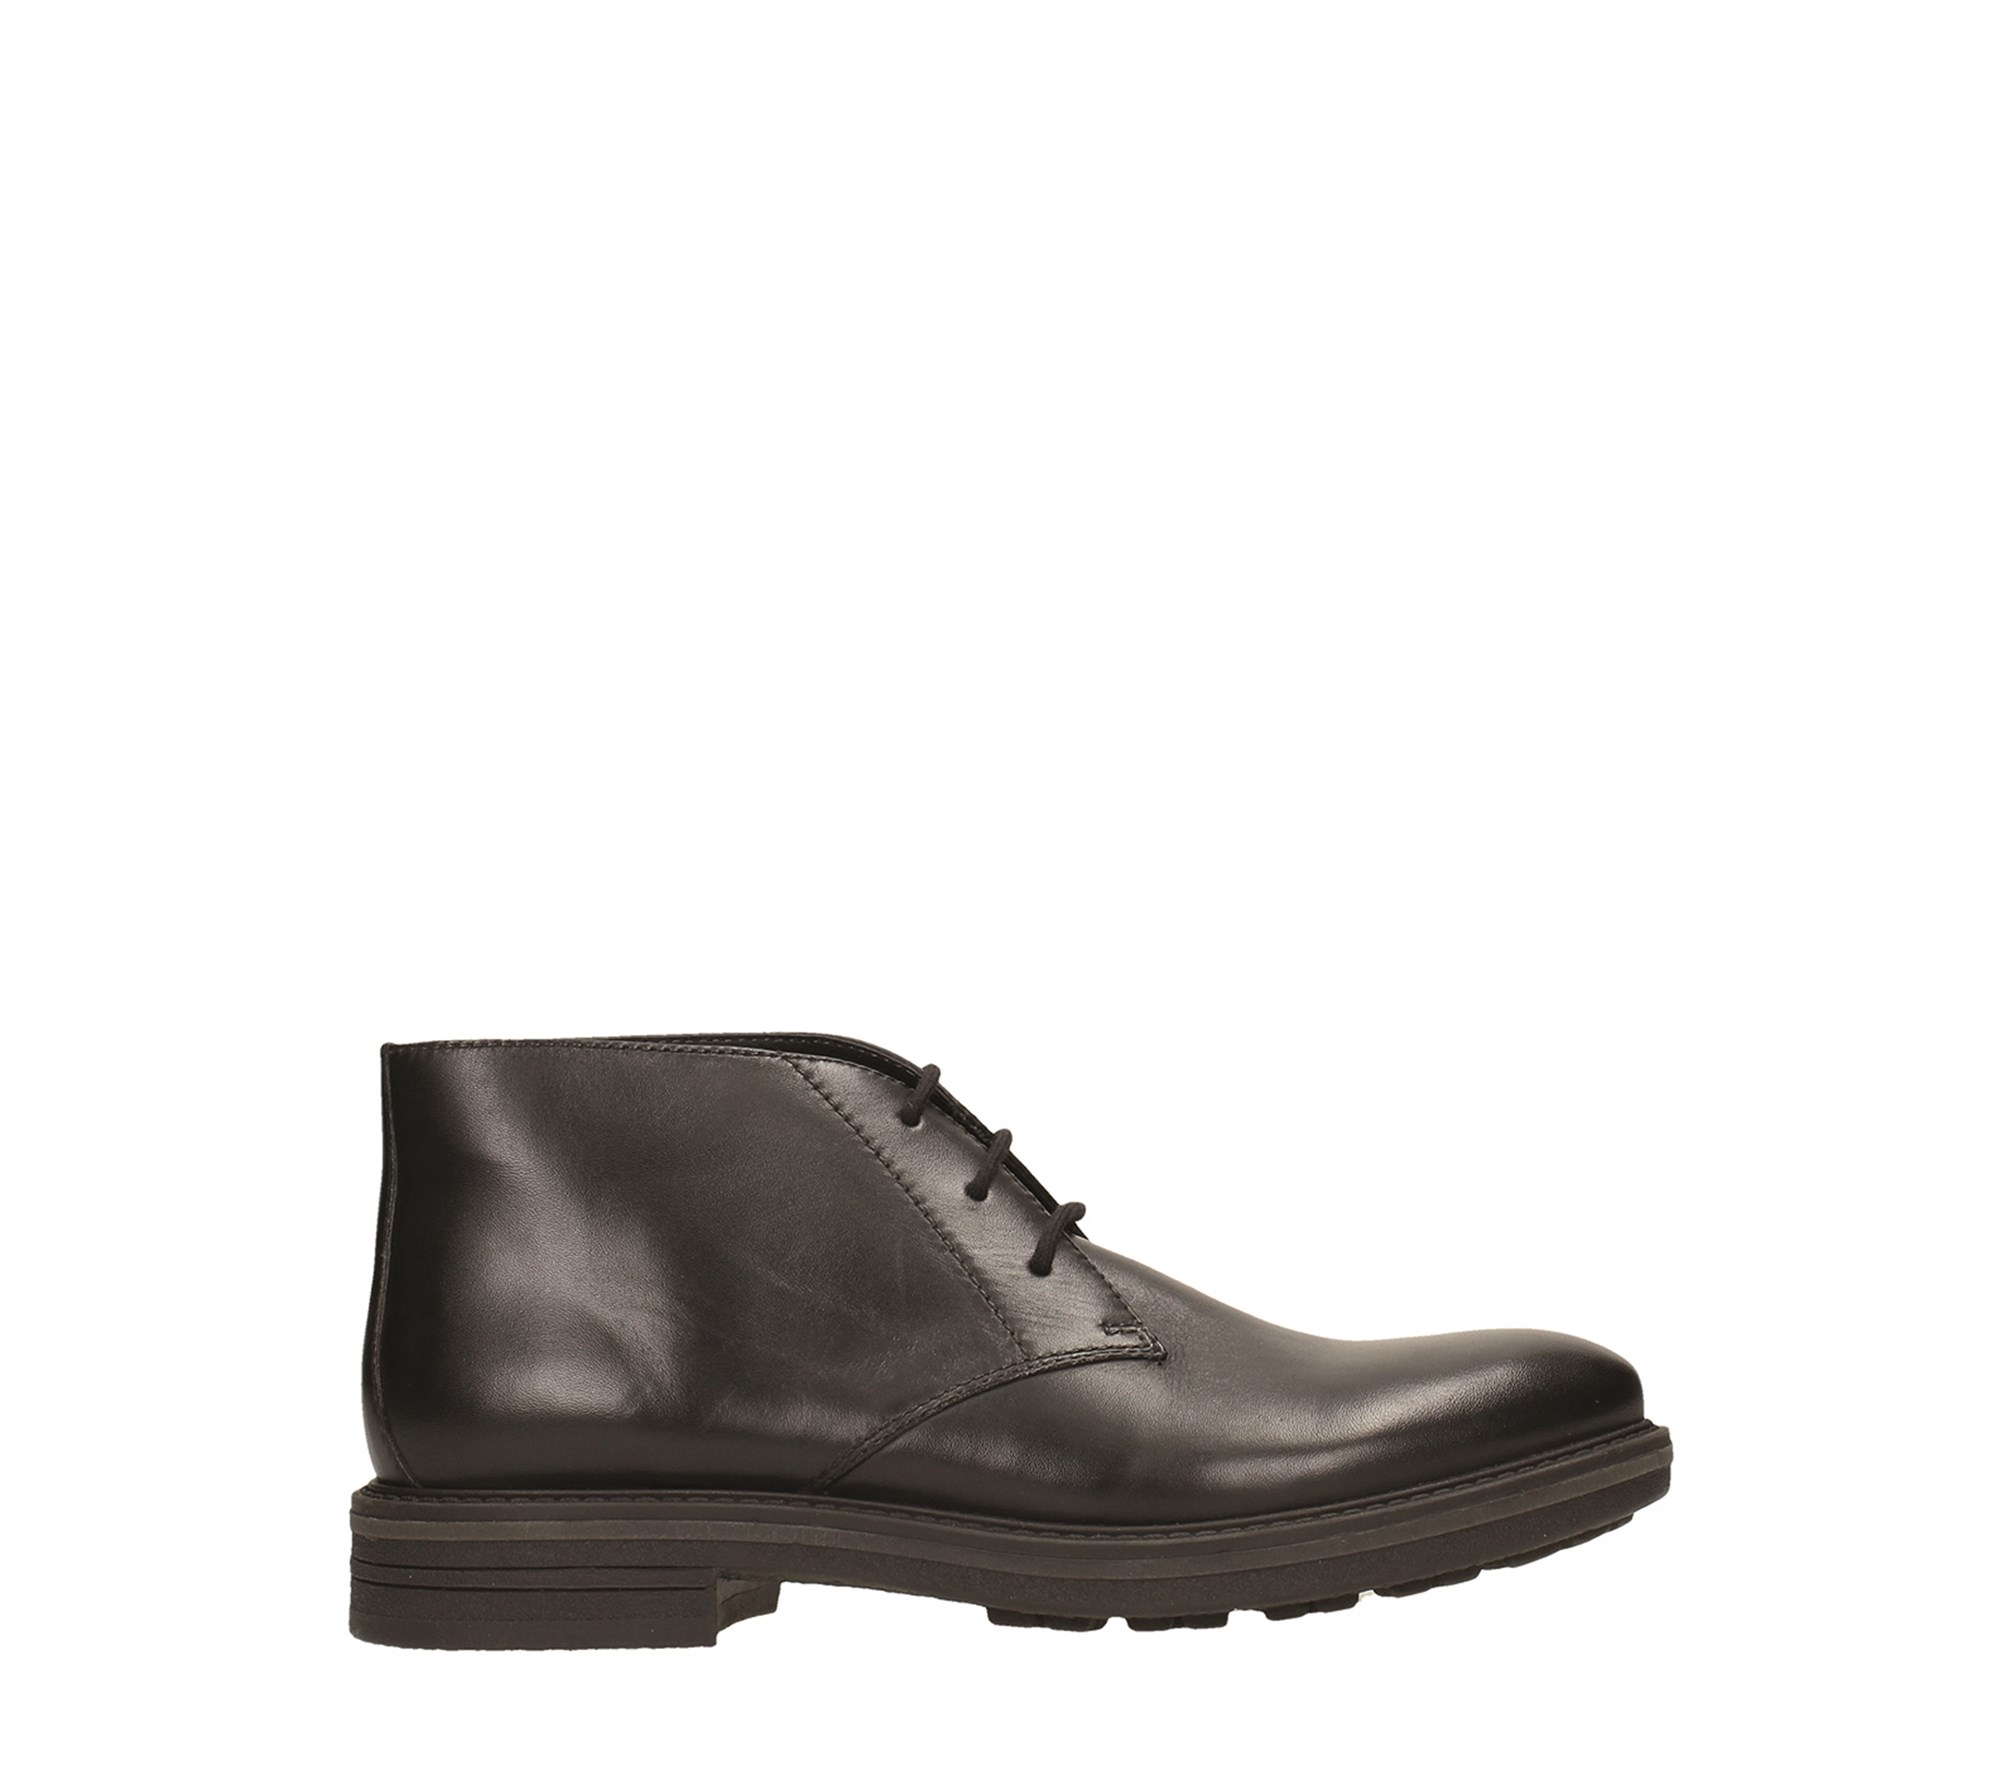 Tata Italia Shoes Man Stivaletti MH-348H10